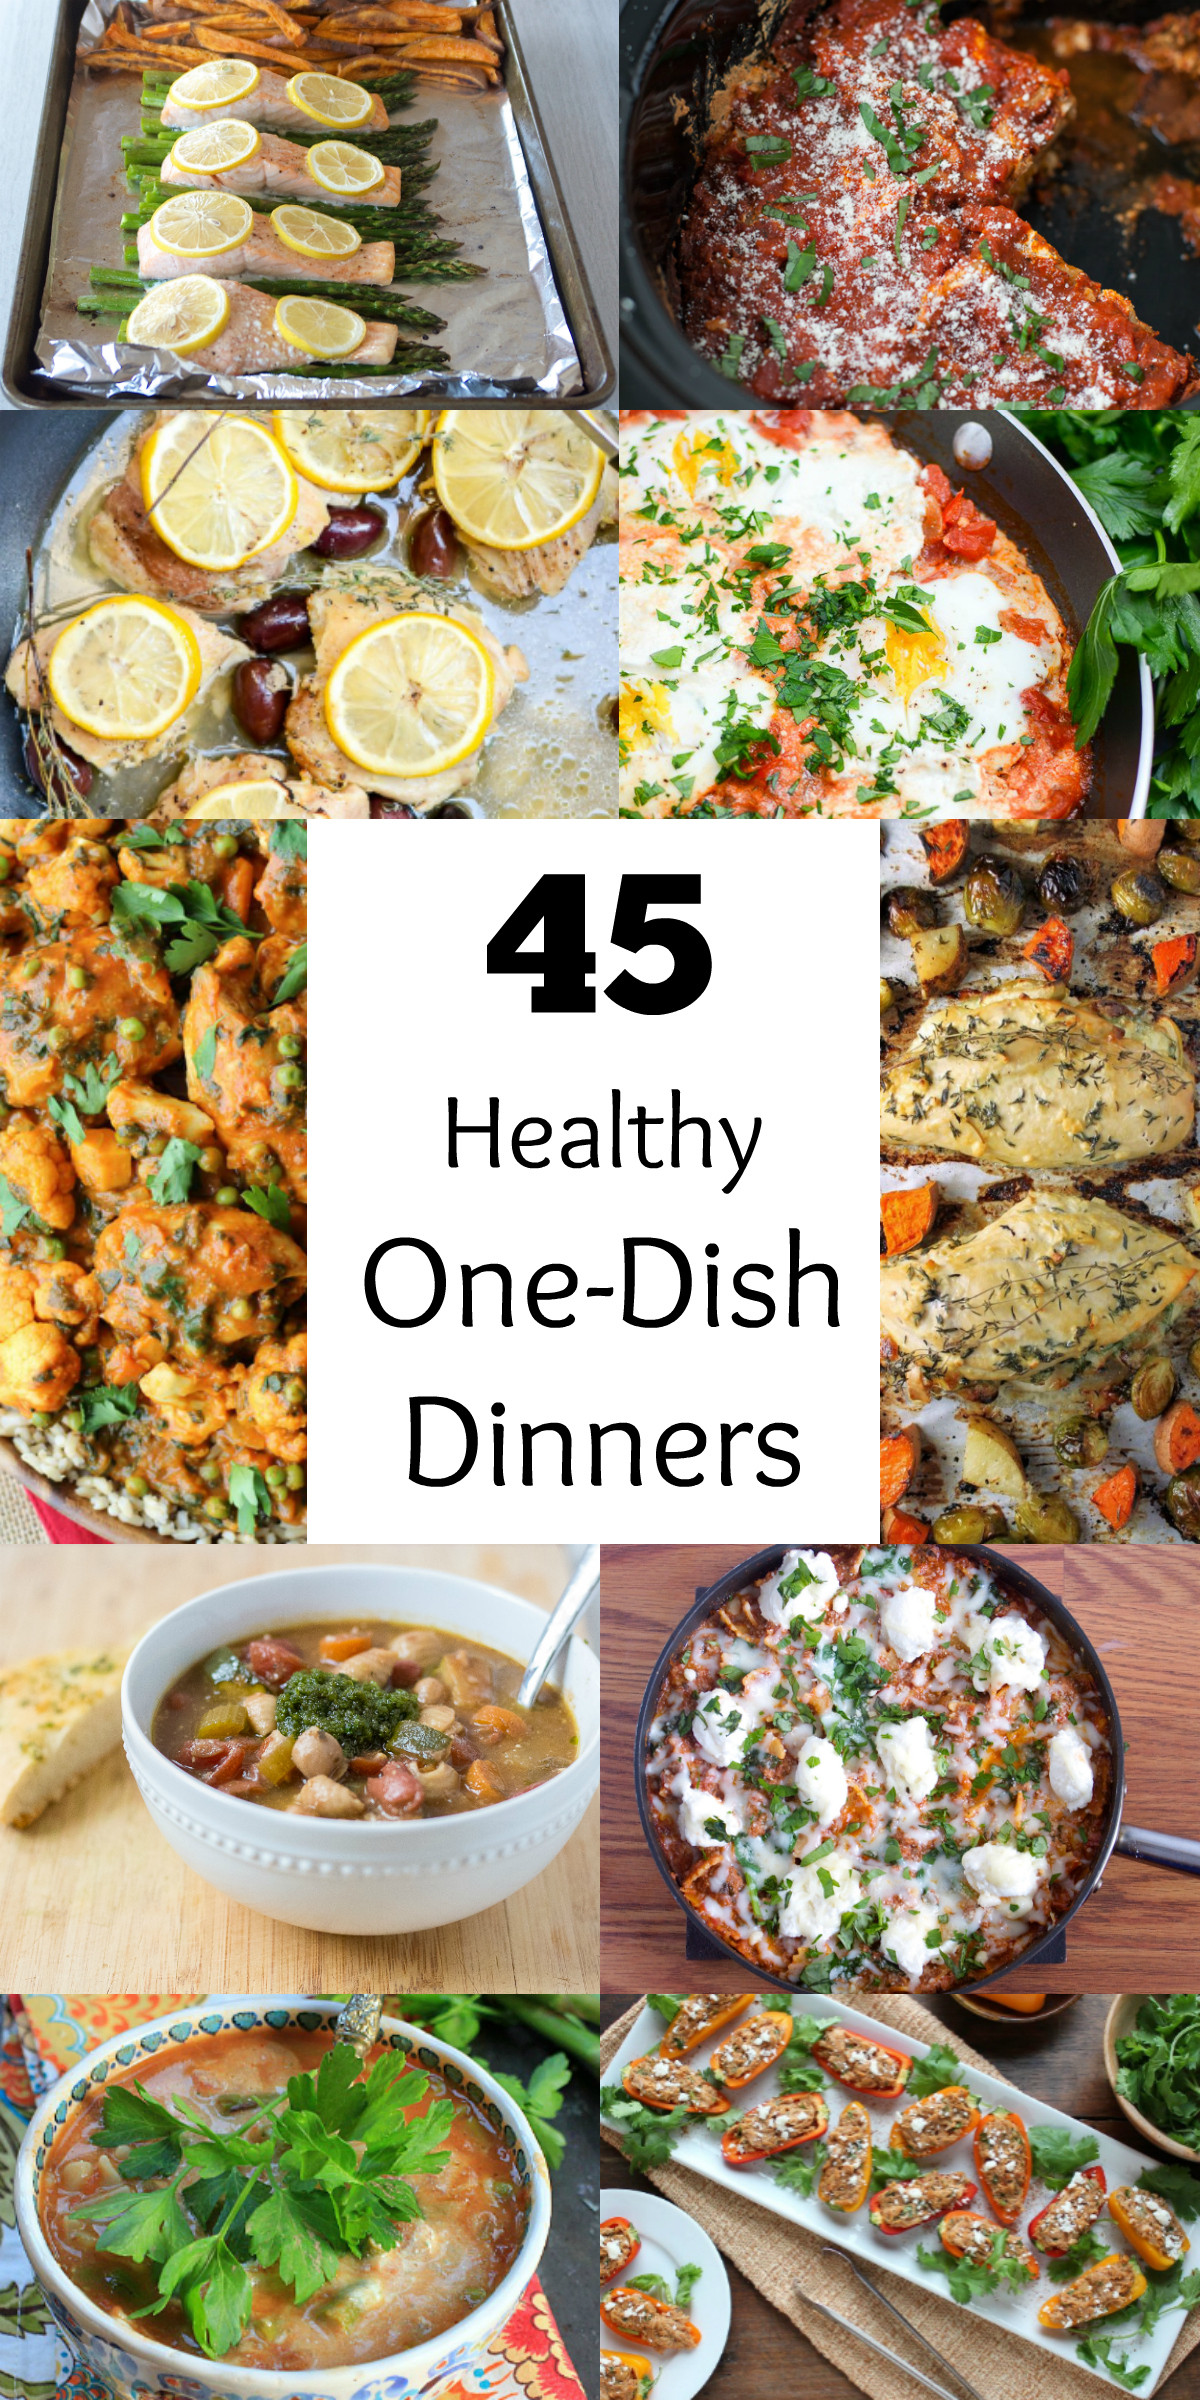 Healthy One Dish Dinners  45 Healthy e Dish Dinners Bite of Health Nutrition